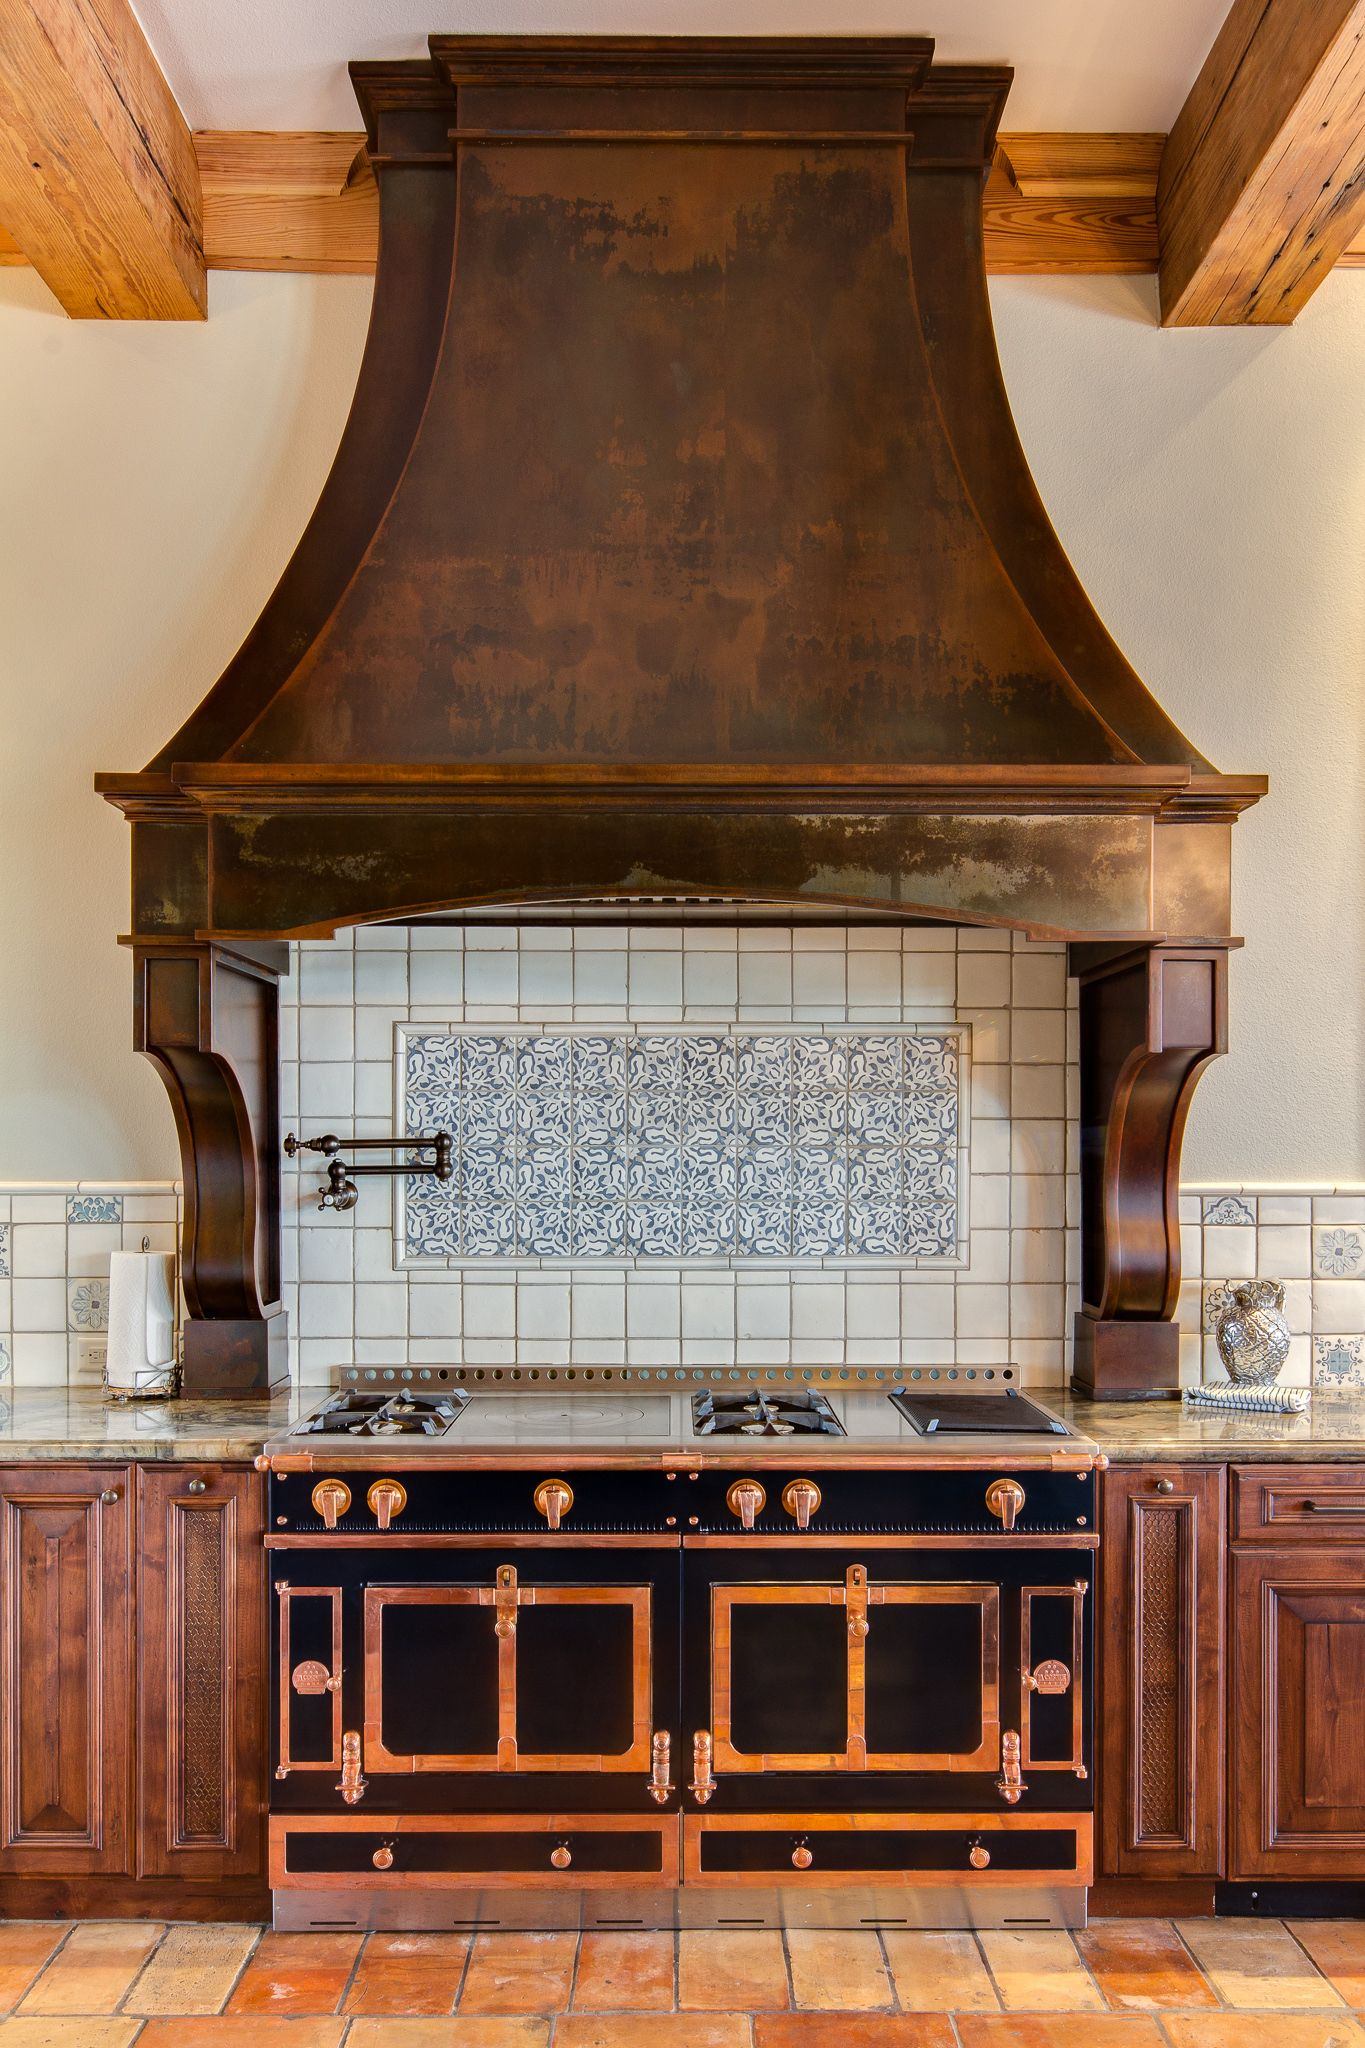 Stand out custom Cherry Hills range hood in Rustic Iron ...